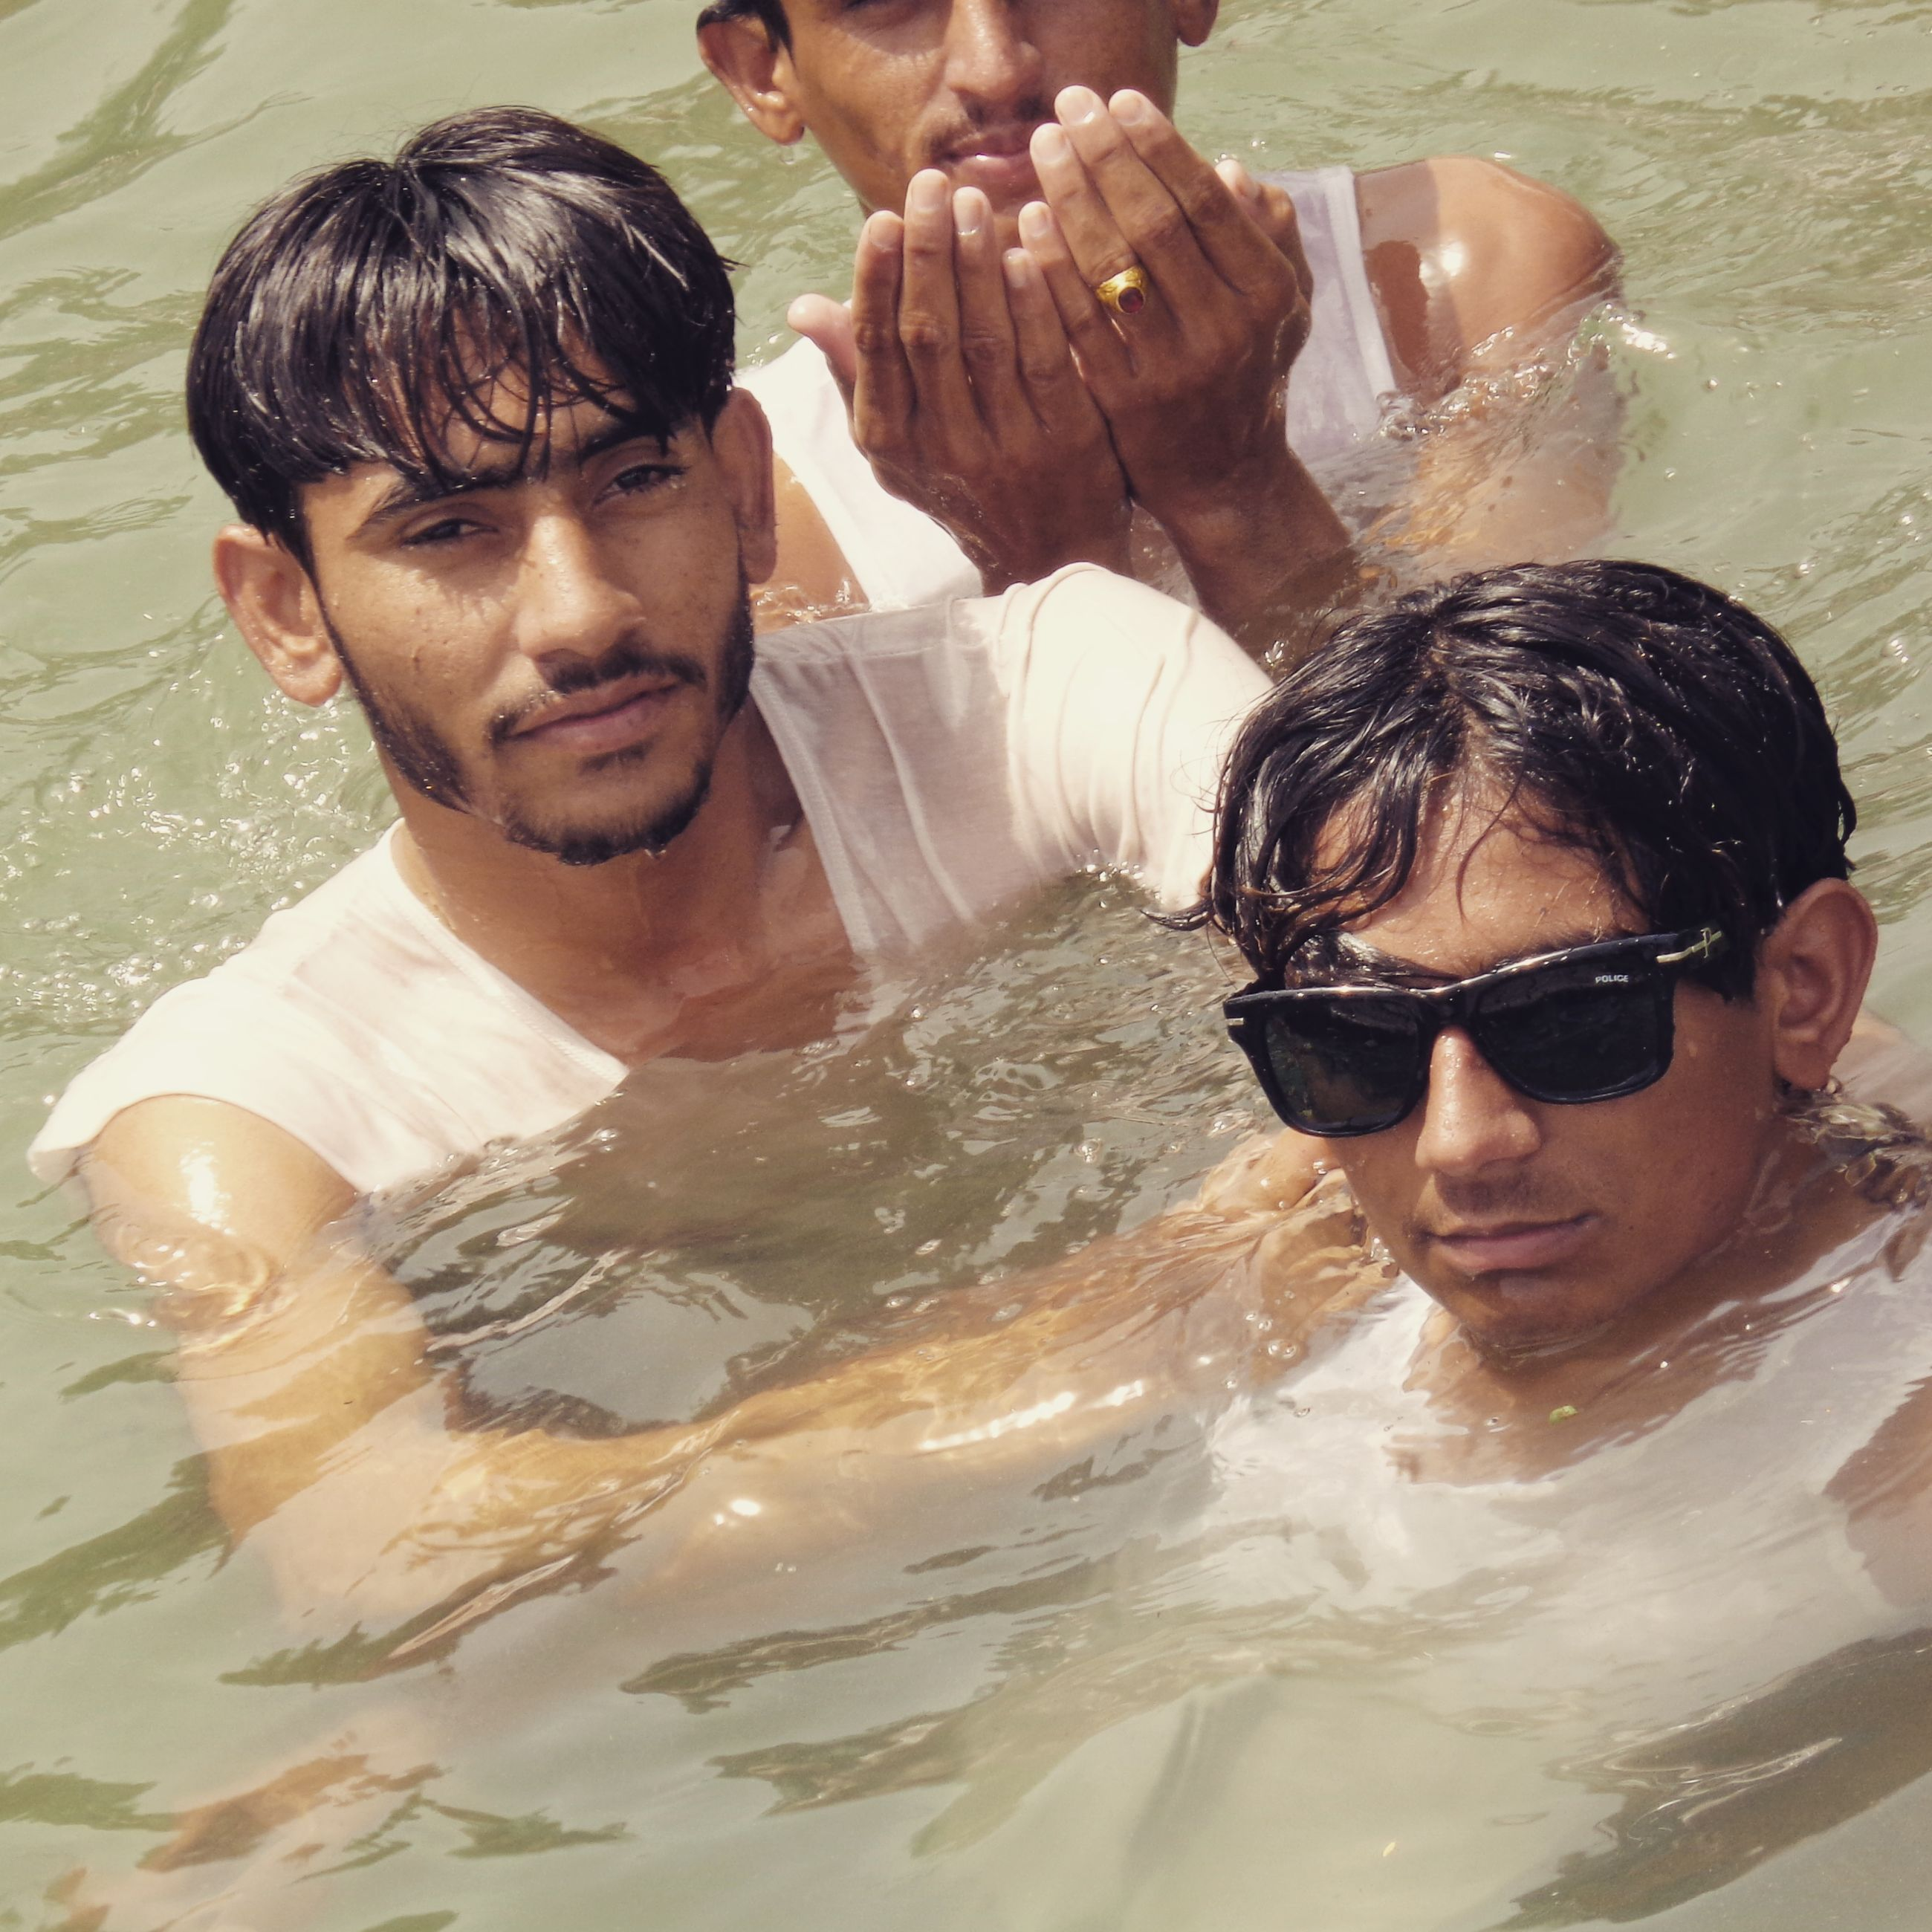 person, lifestyles, leisure activity, togetherness, water, bonding, looking at camera, boys, happiness, childhood, portrait, elementary age, smiling, casual clothing, young men, young adult, love